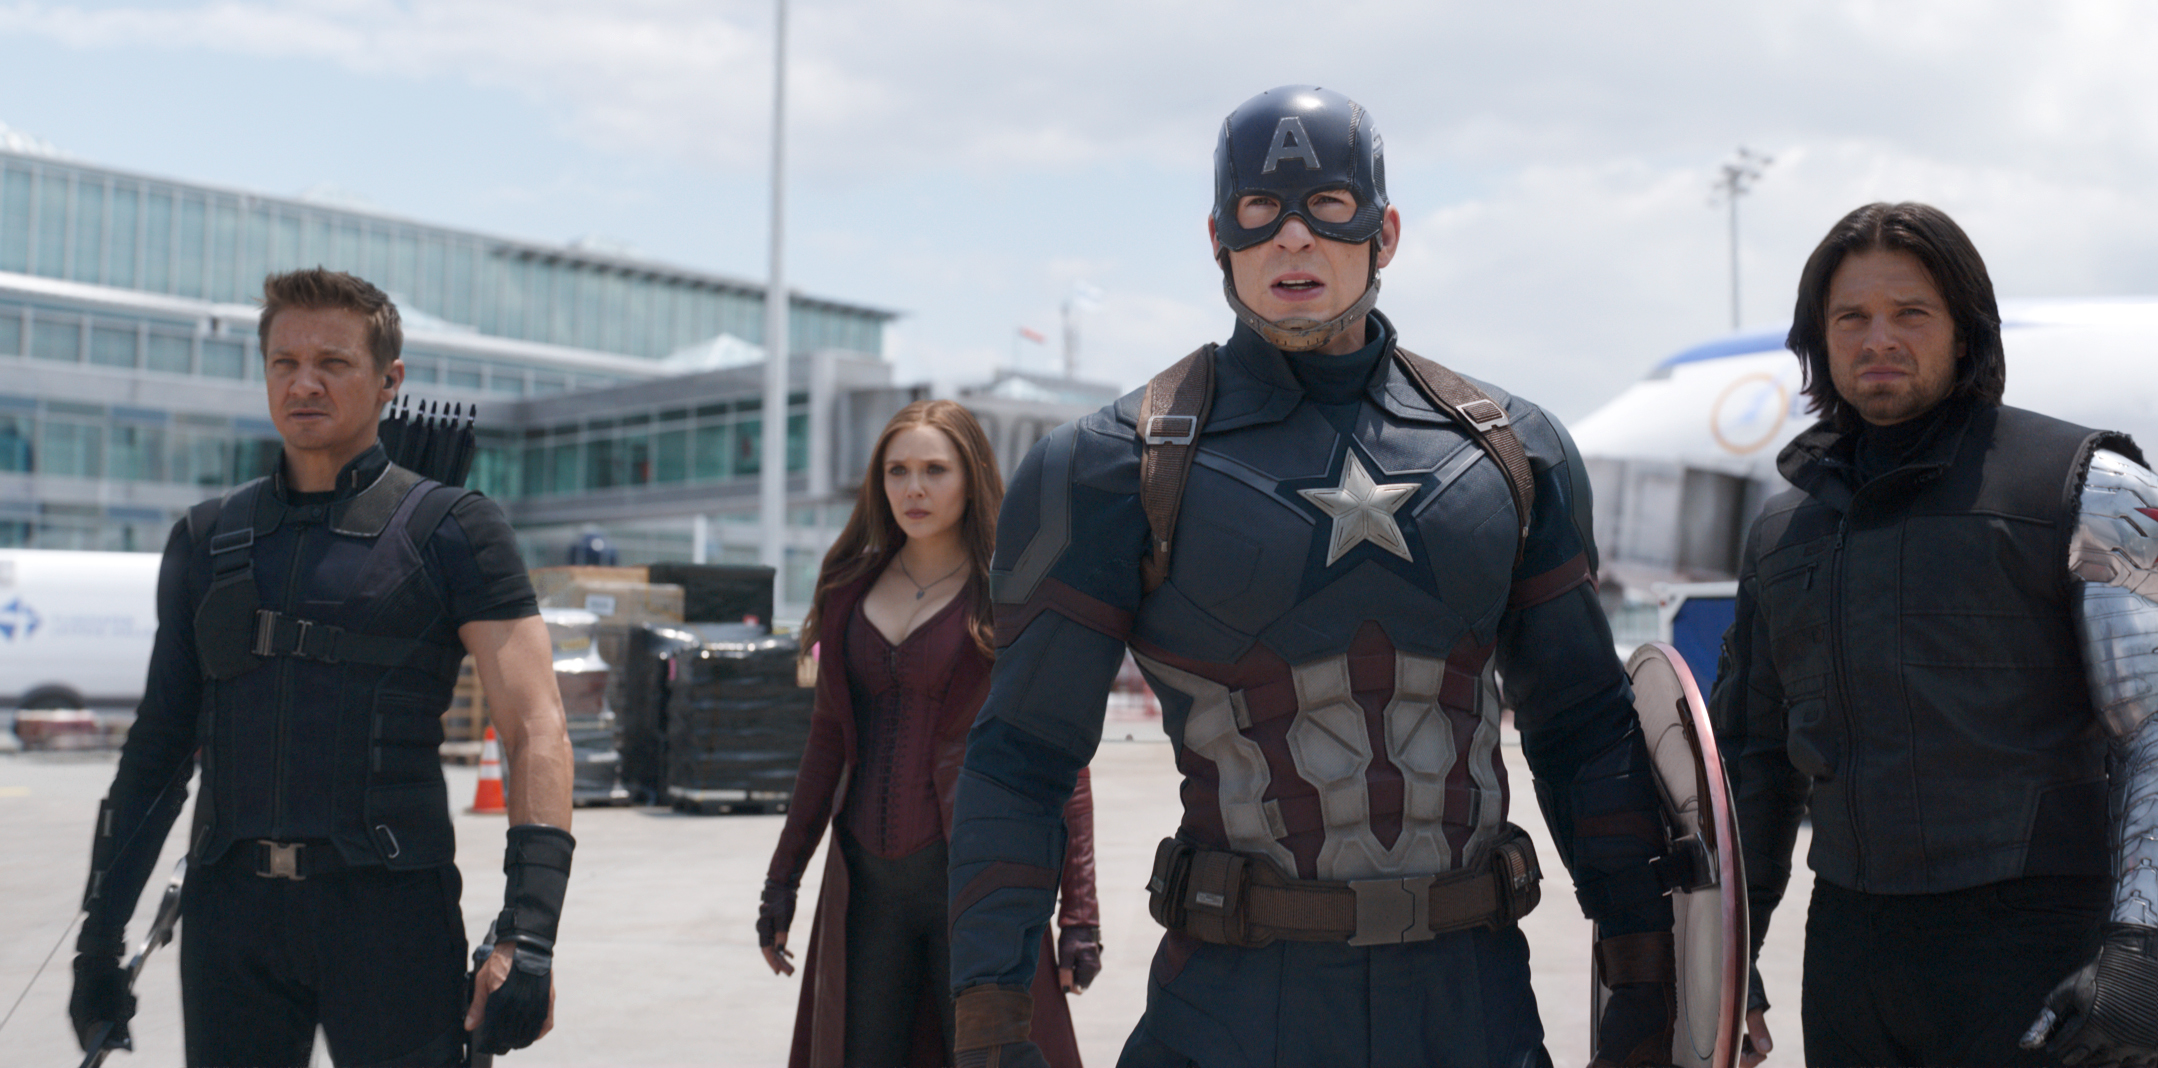 'Captain America: Civil War' is the Zenith of the Superhero Genre